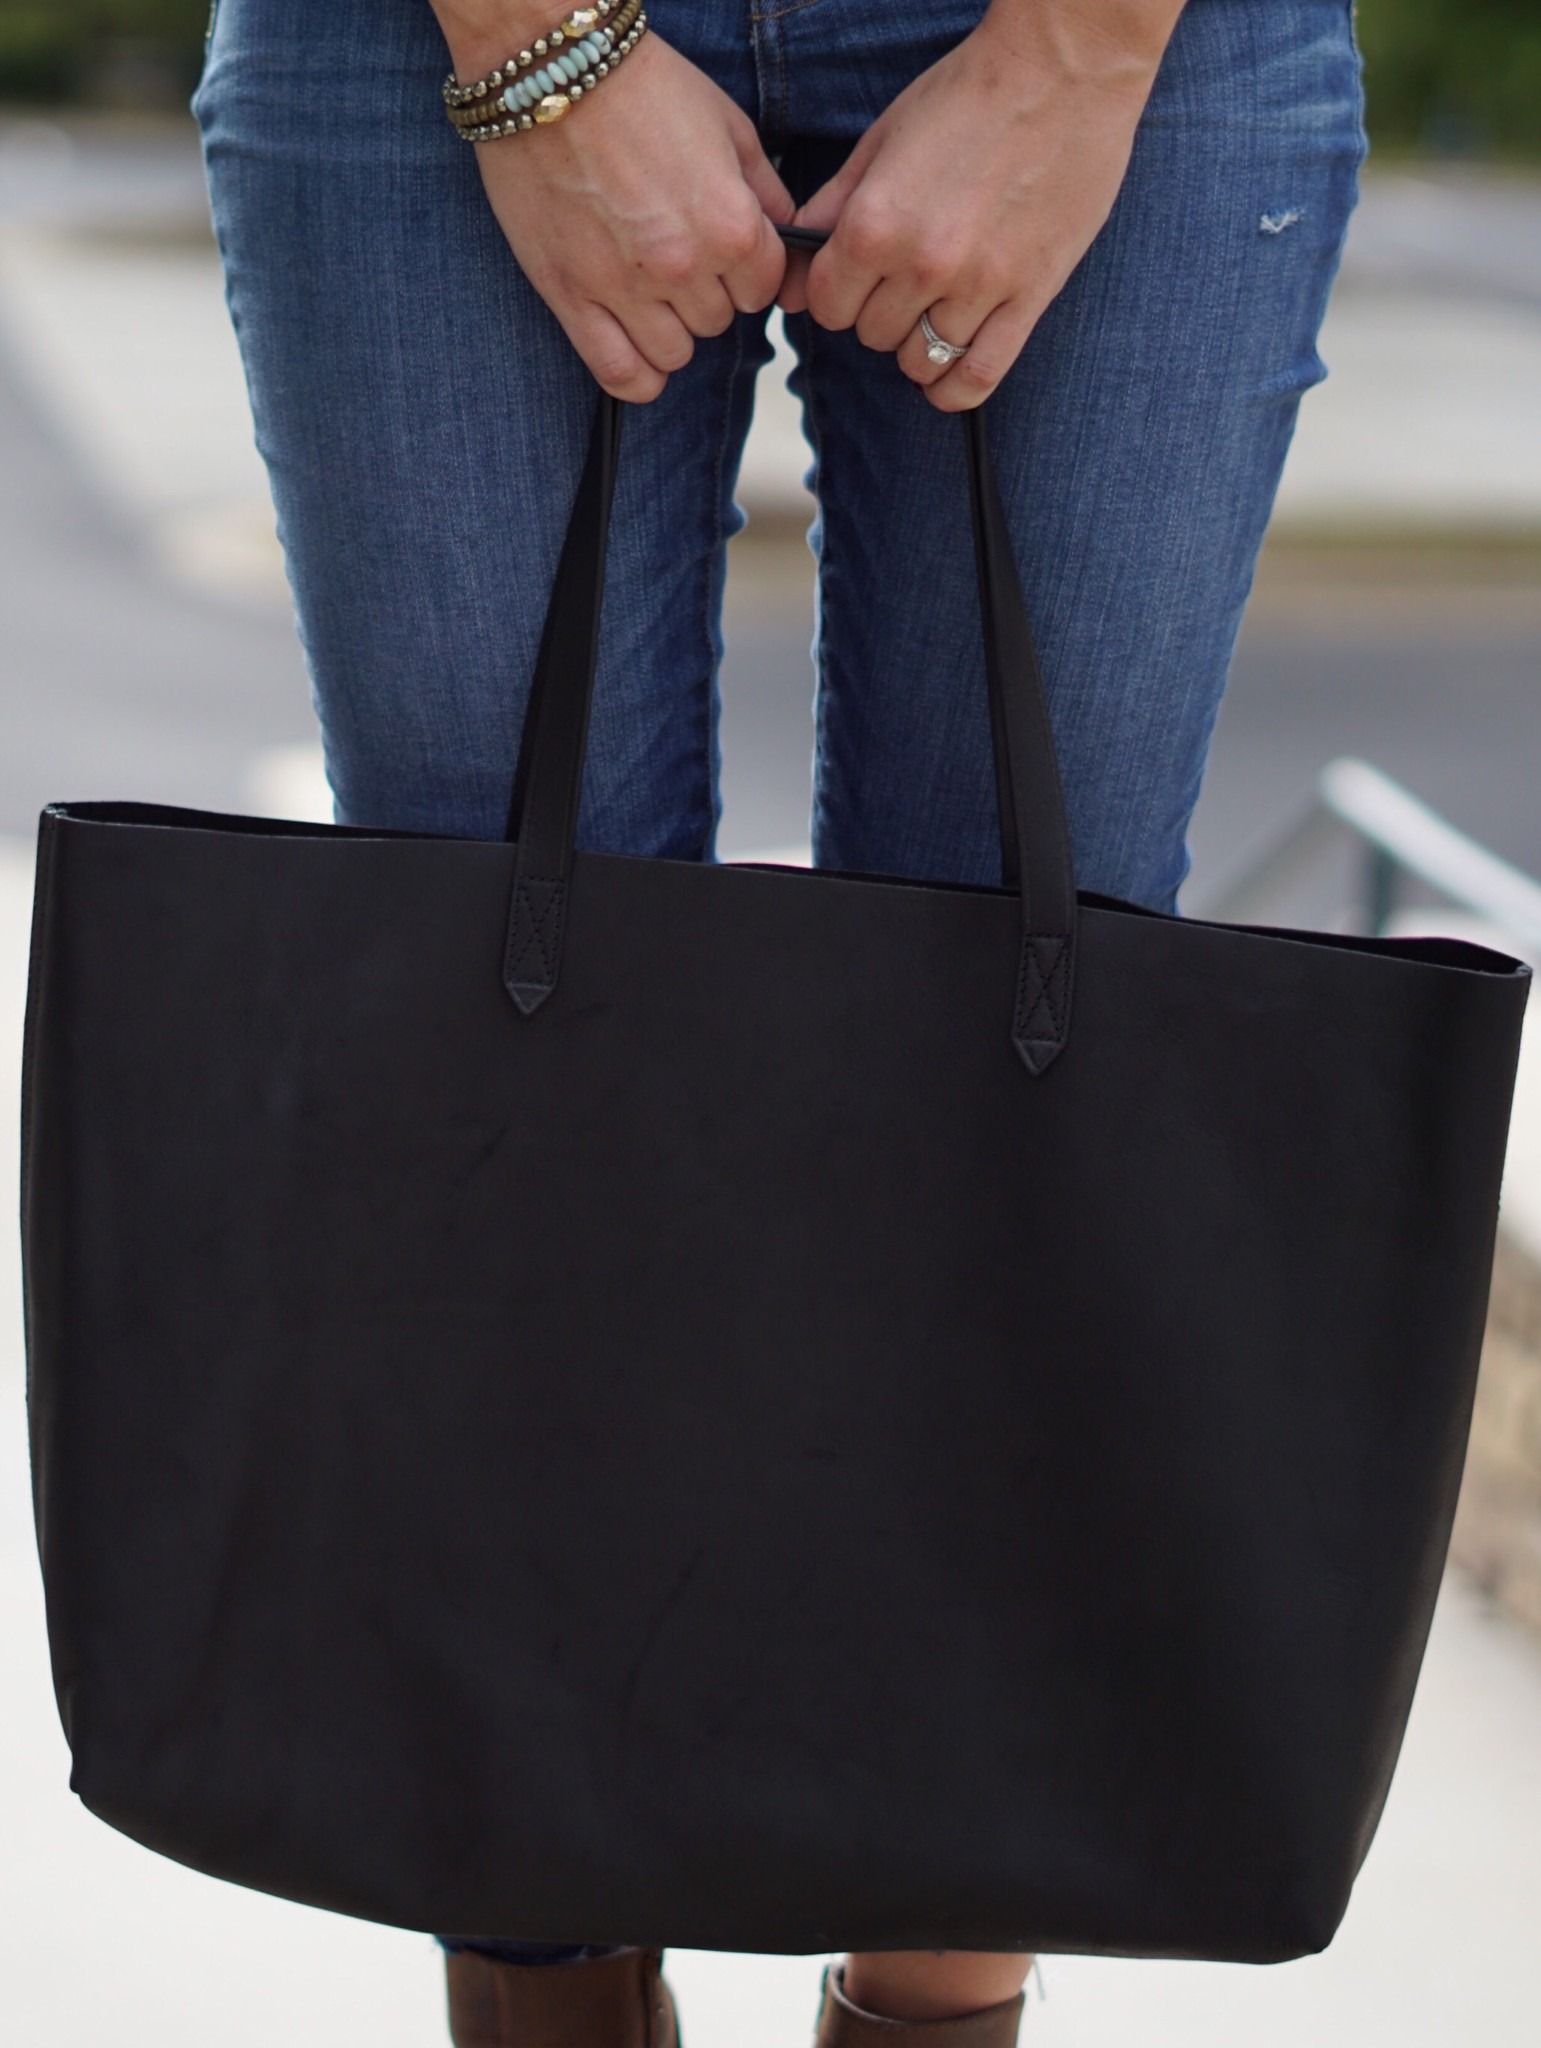 madewell jeans and east-west tote